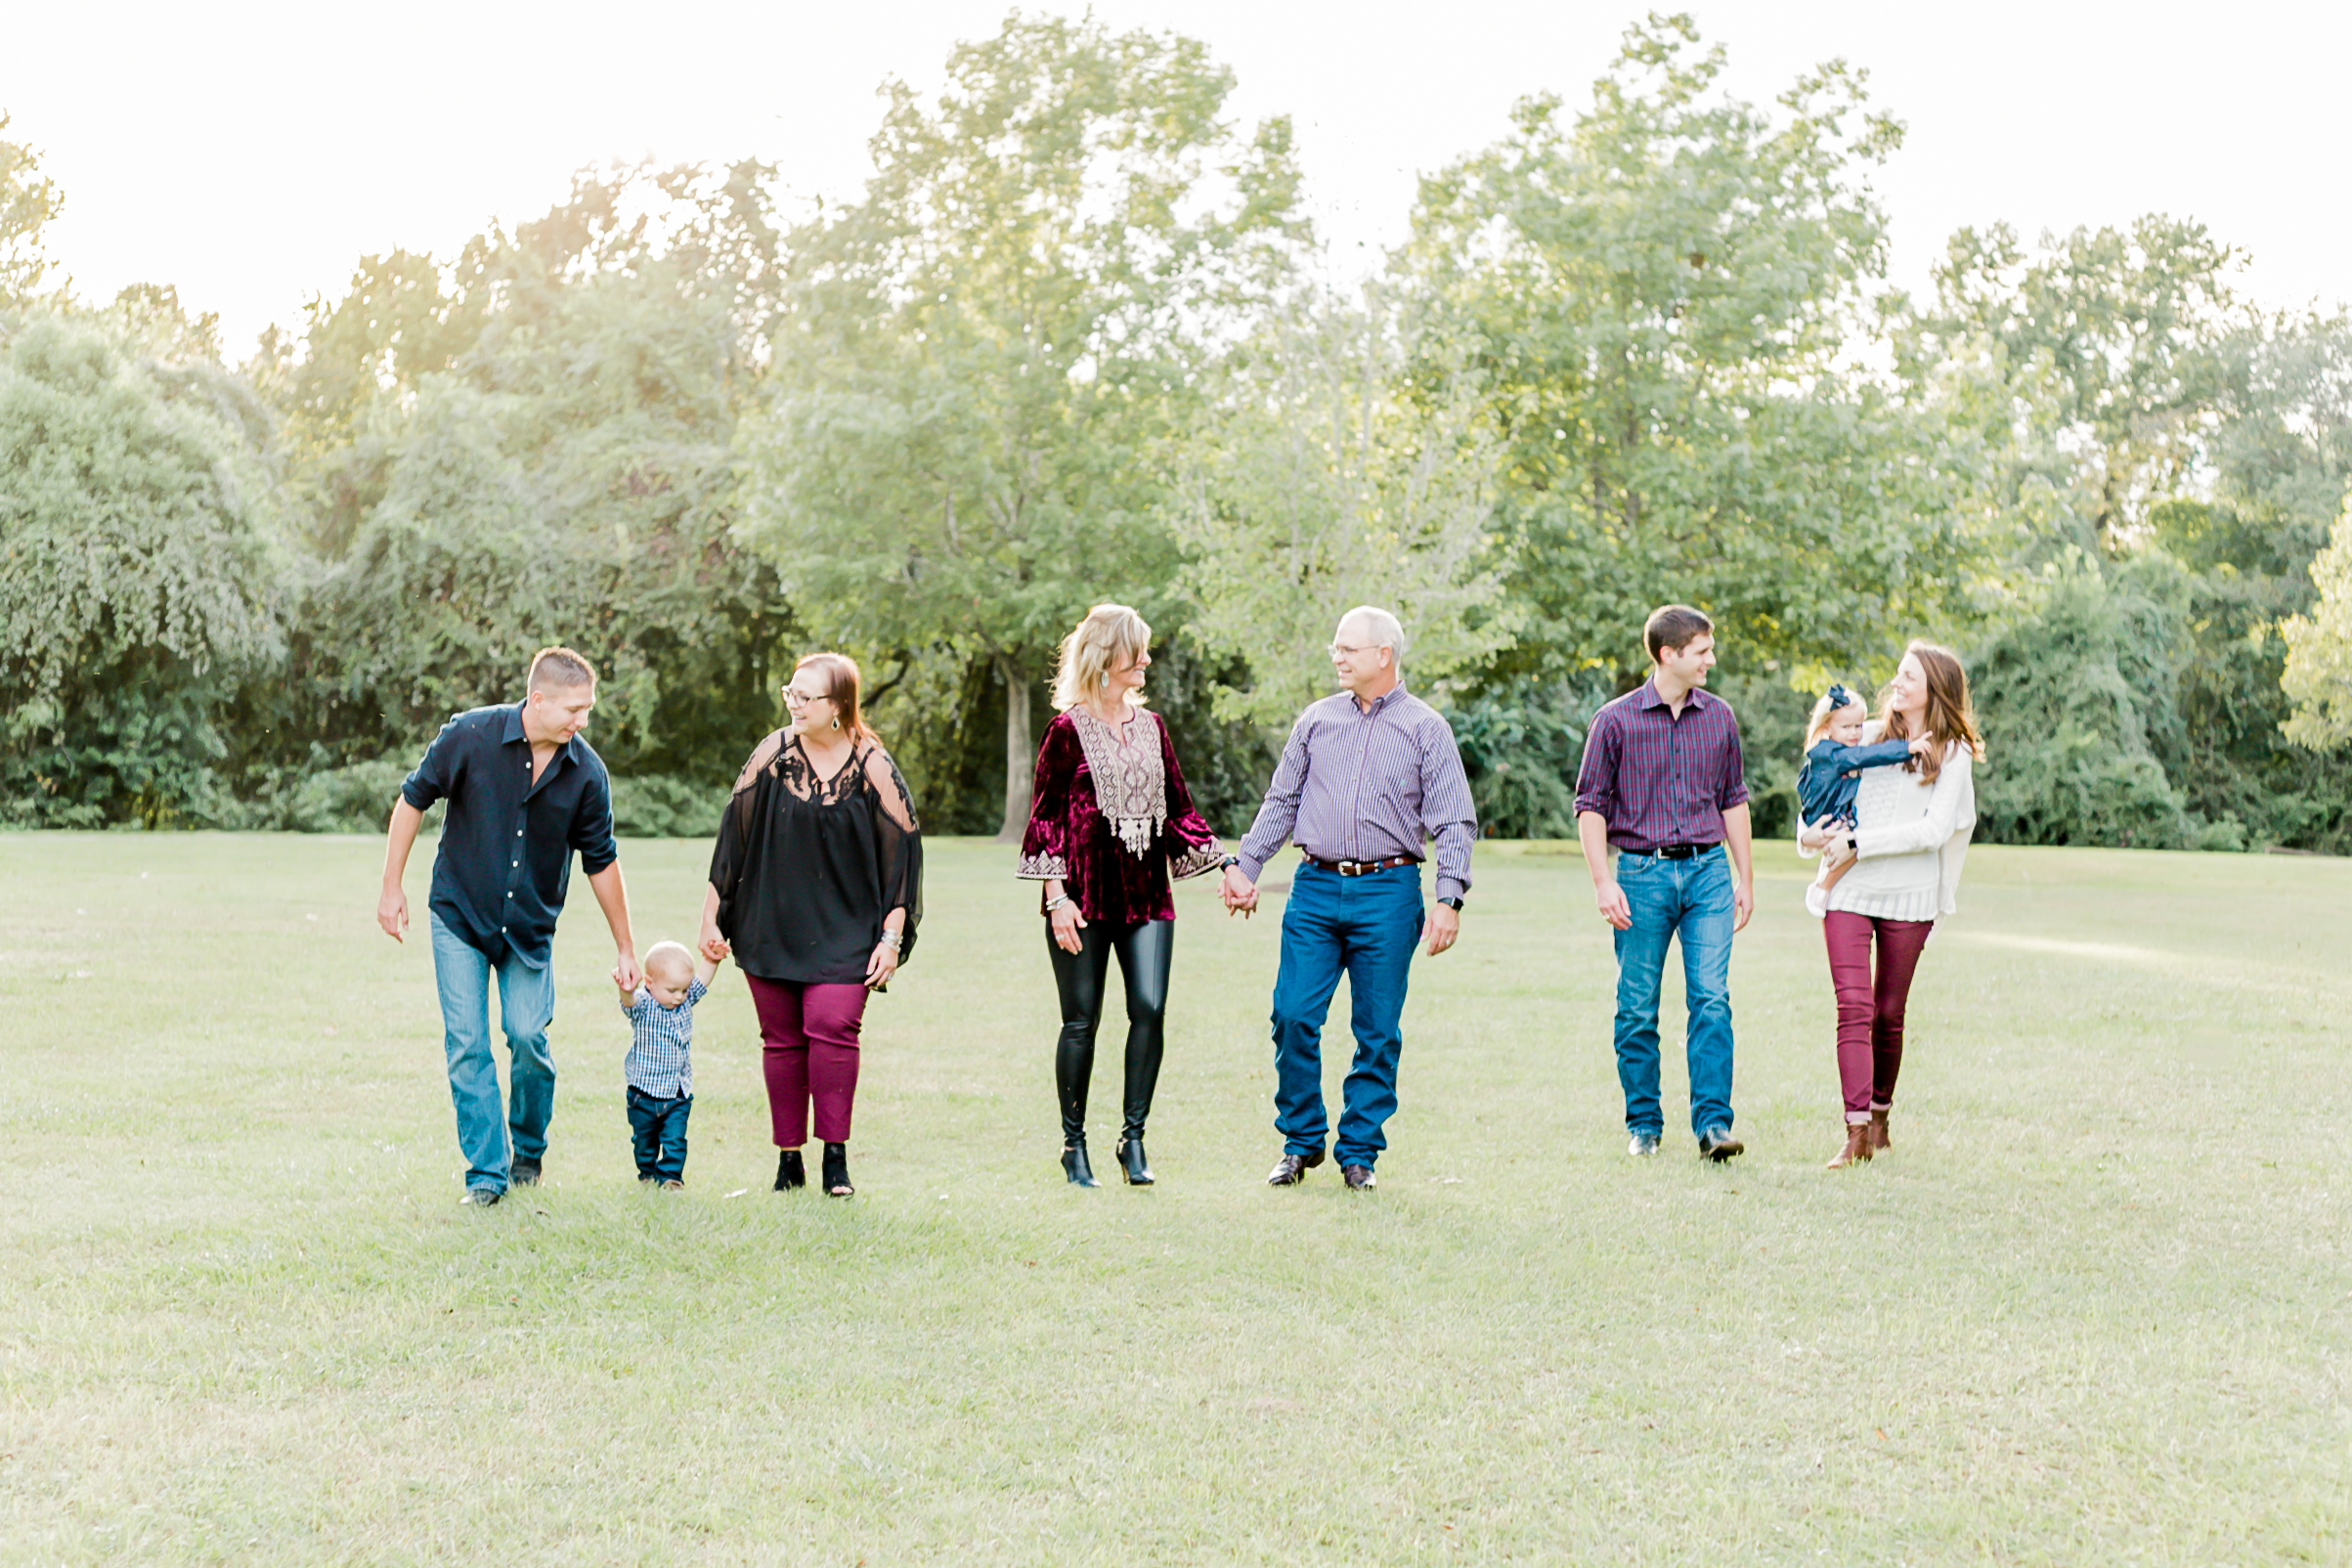 Hoelscher_FamilySession2018_ScreenRes-131.jpg